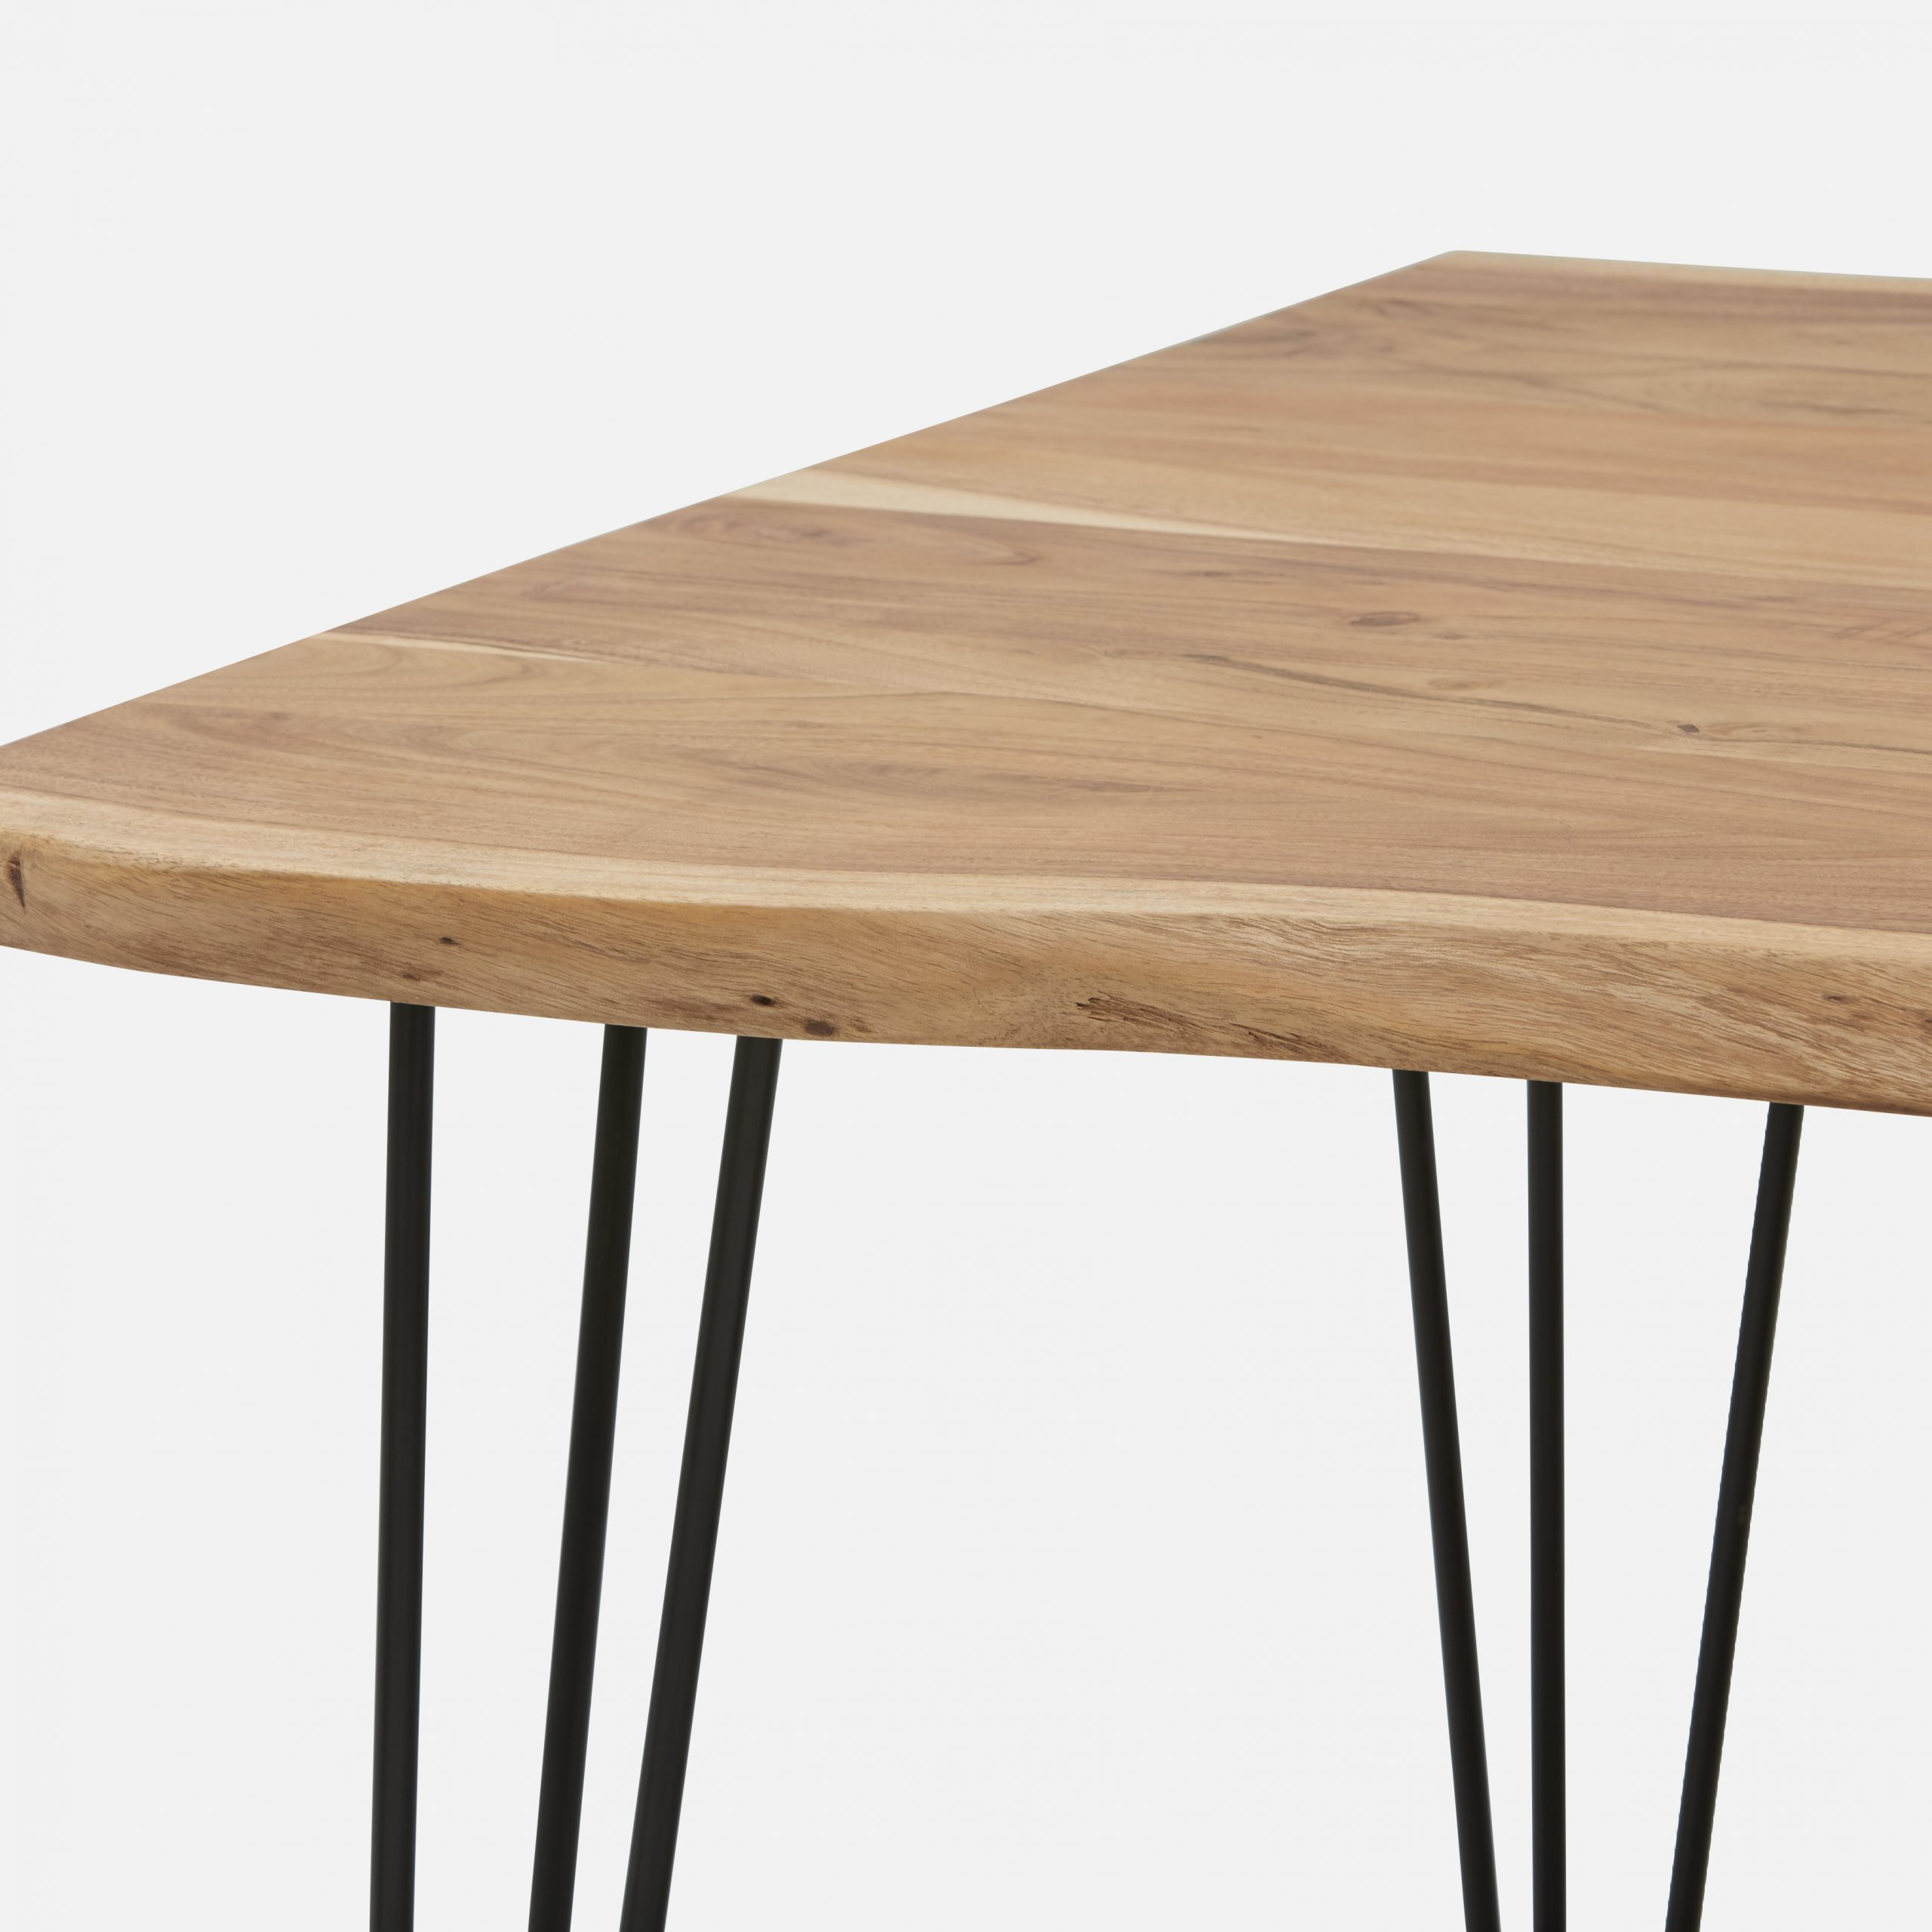 Struct Regarding Preferred Solid Acacia Wood Dining Tables (View 6 of 30)